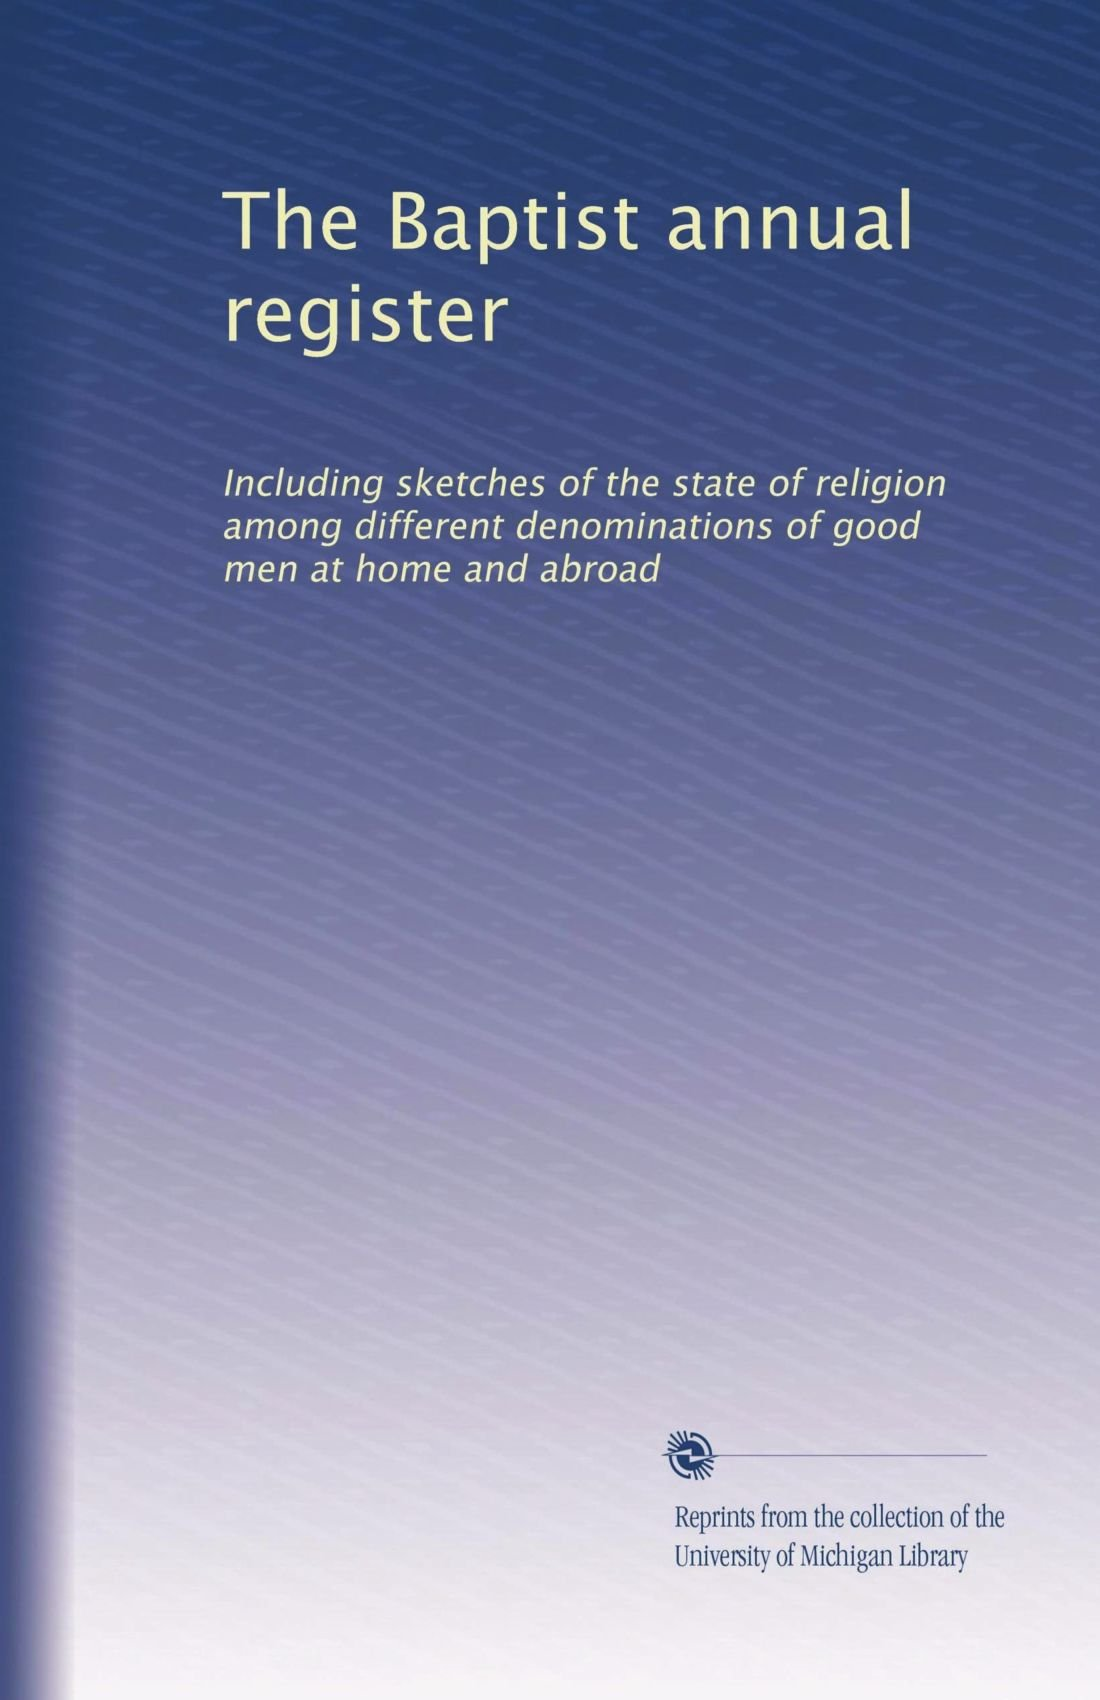 Download The Baptist annual register: Including sketches of the state of religion among different denominations of good men at home and abroad pdf